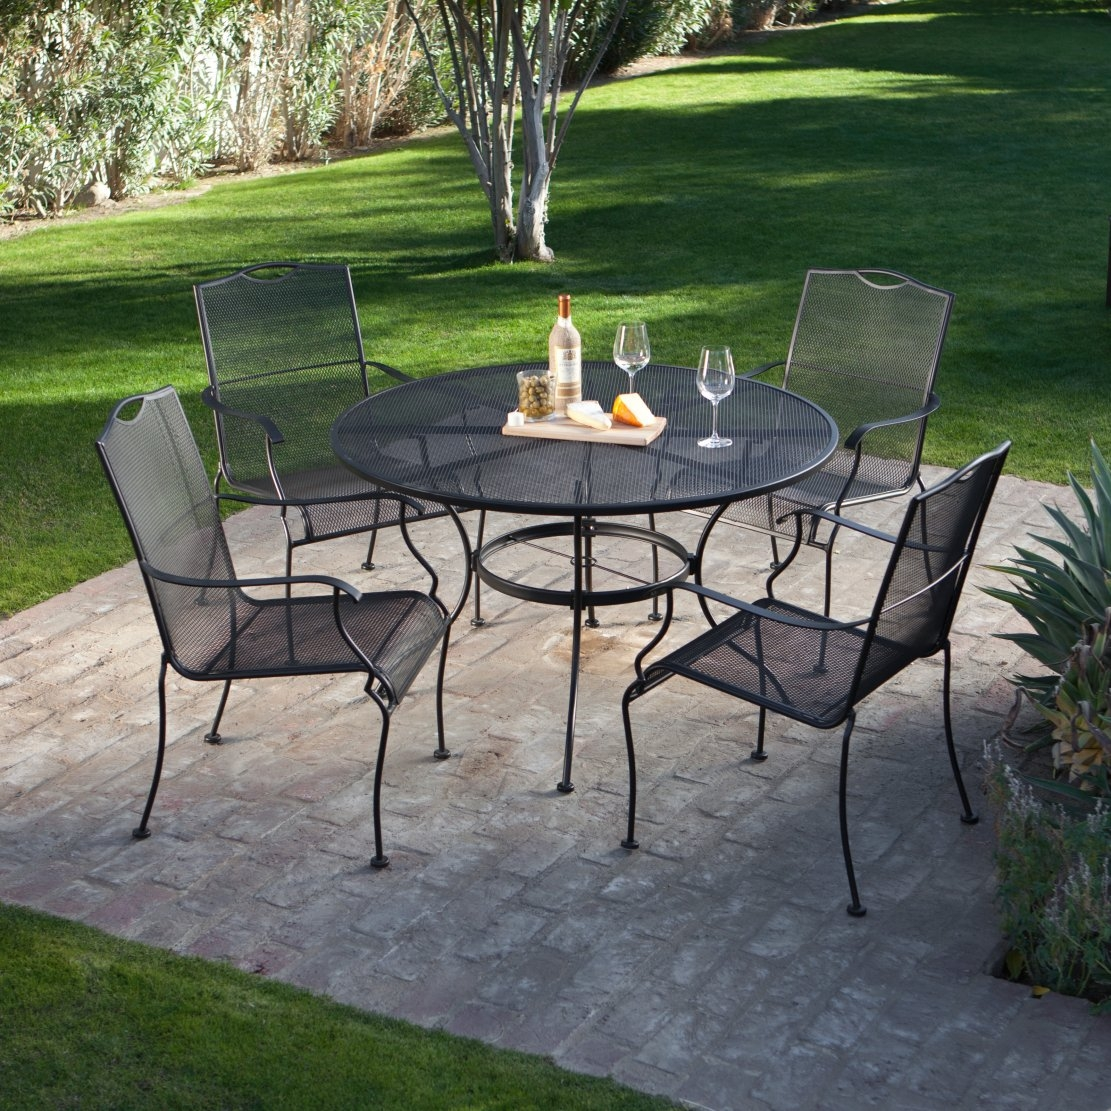 5 piece wrought iron patio furniture dining set seats 4 fastfurnishings com